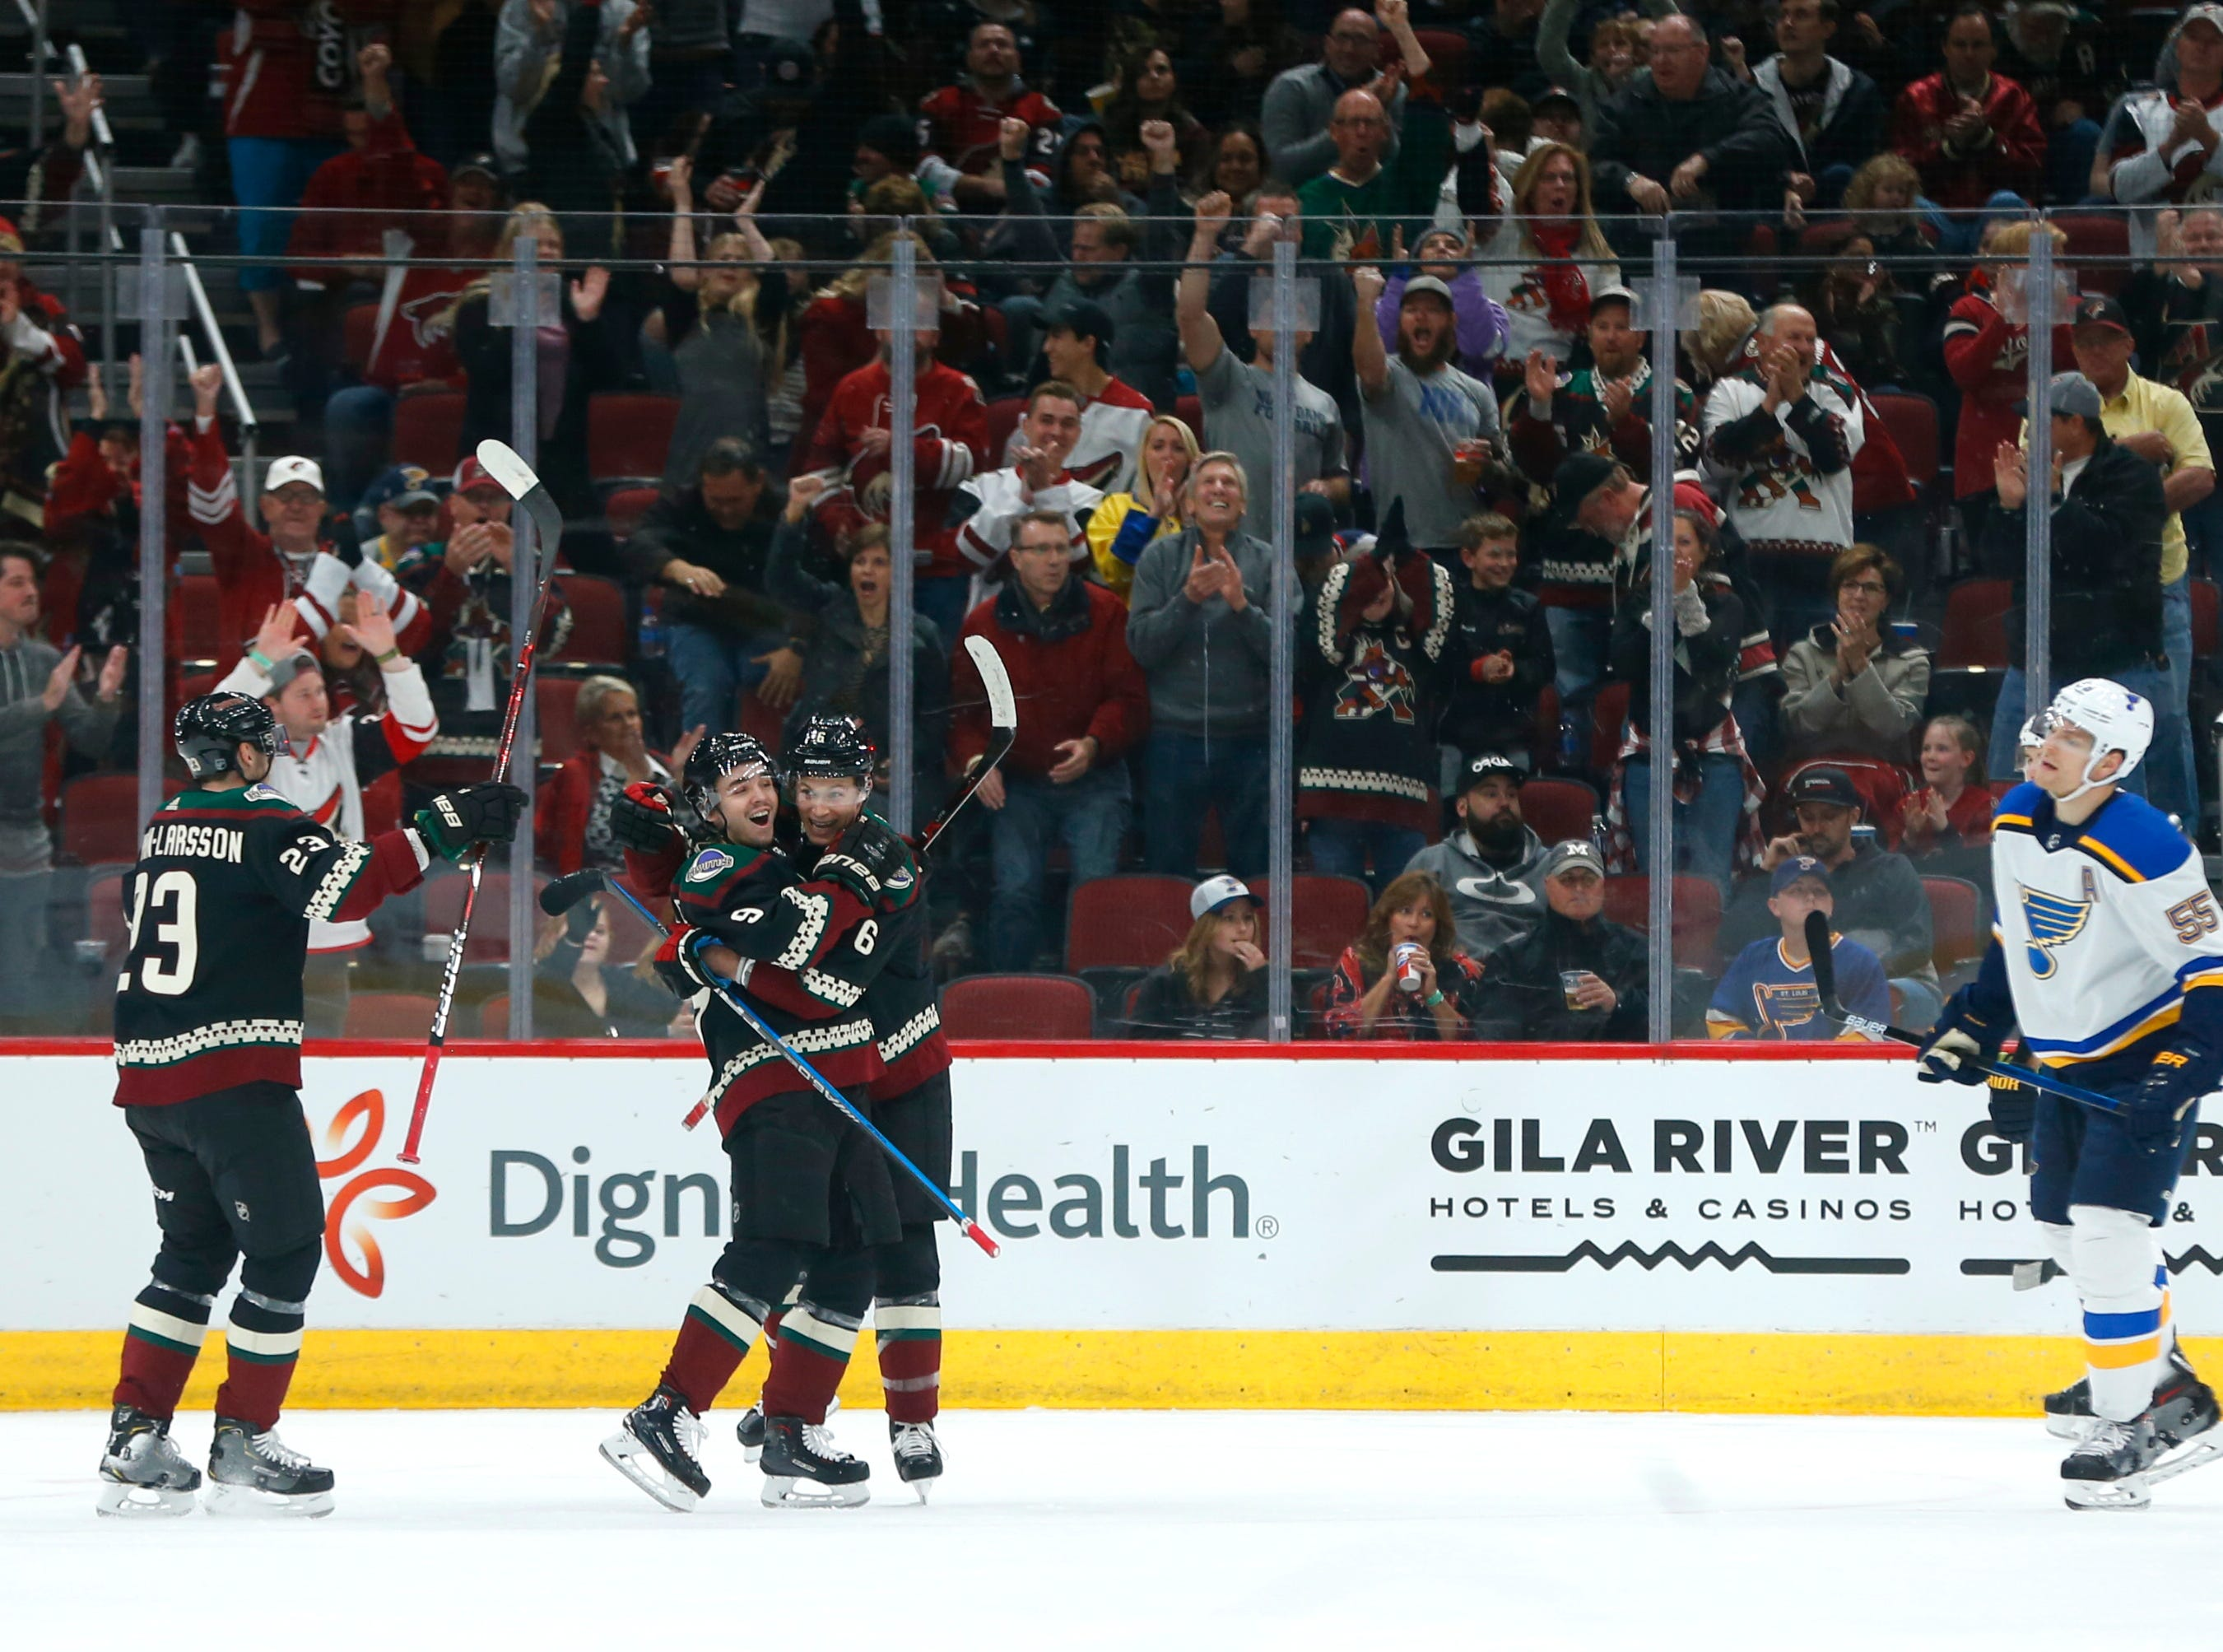 Coyotes' Oliver Ekman-Larsson (23) and Clayton Keller (9) celebrate with Jacob Chychrun (6) after his goal against the Blues during the first period at Gila River Arena in Glendale, Ariz. on December 1, 2018.